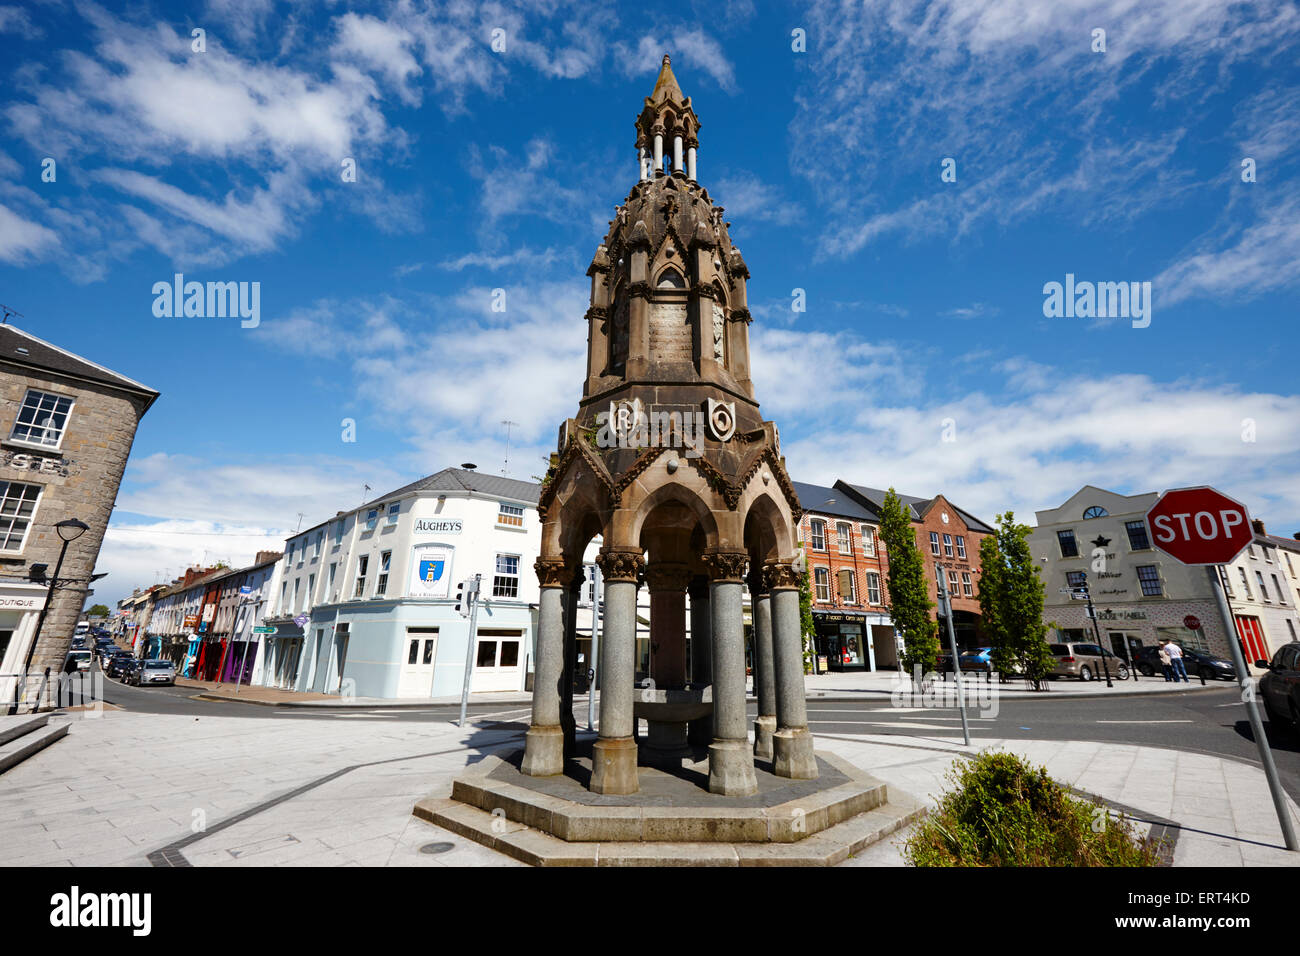 The Rossmore monument in the diamond monaghan town county monaghan republic of ireland - Stock Image